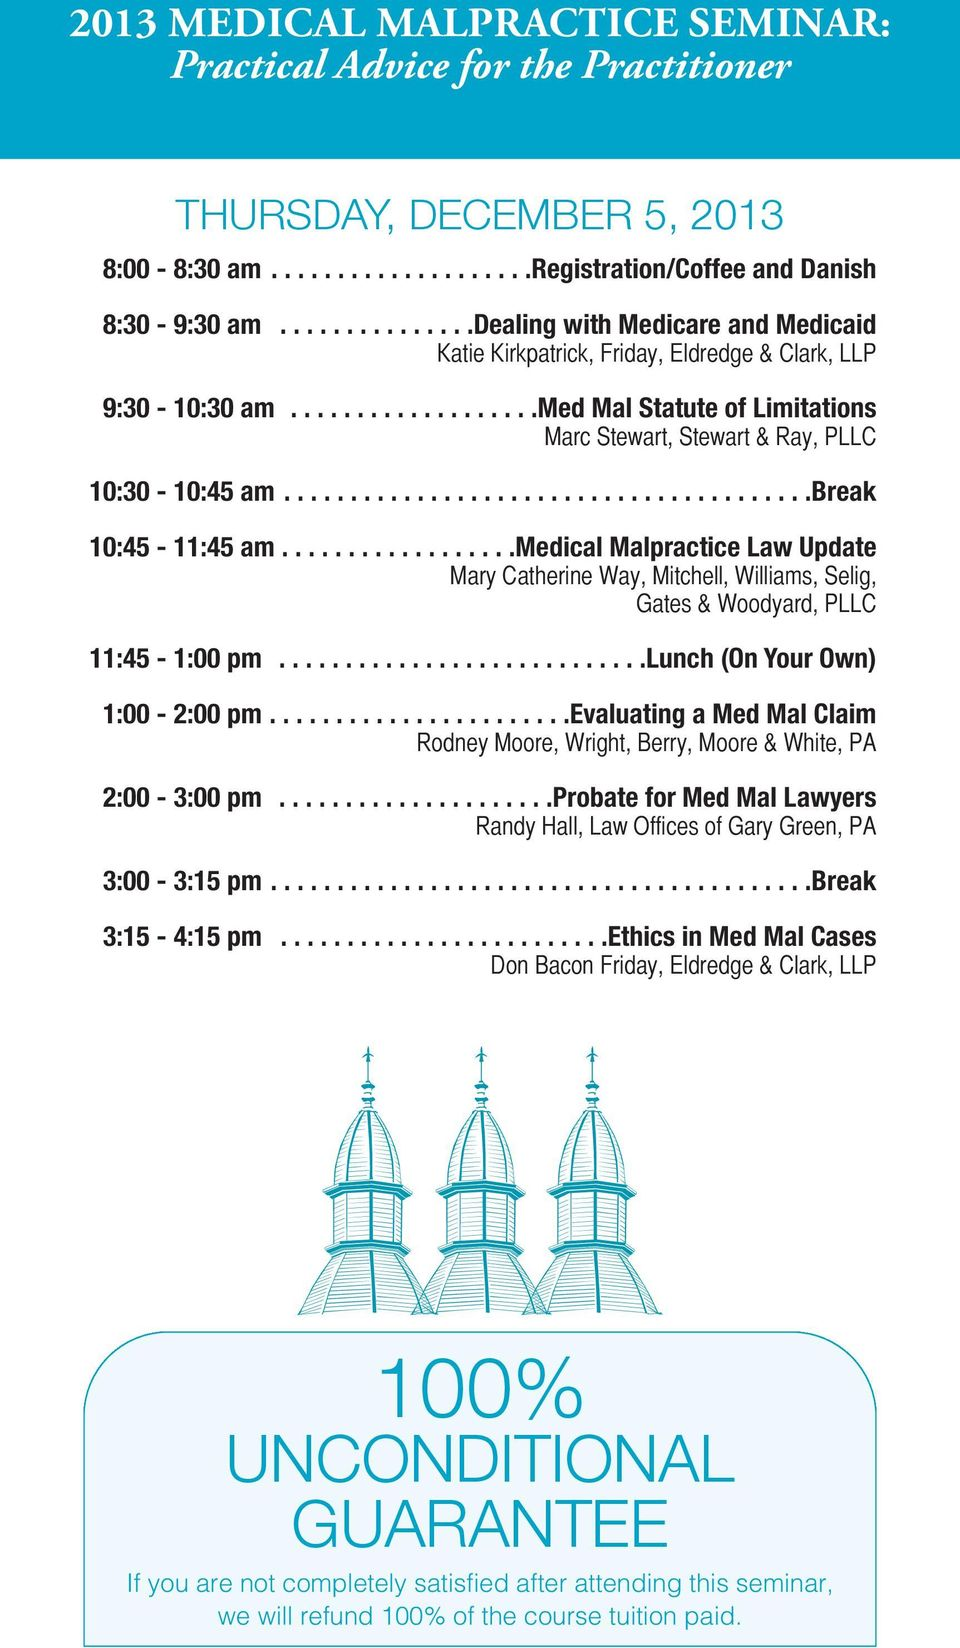 .......................................break 10:45-11:45 am..................medical Malpractice Law Update Mary Catherine Way, Mitchell, Williams, Selig, Gates & Woodyard, PLLC 11:45-1:00 pm.